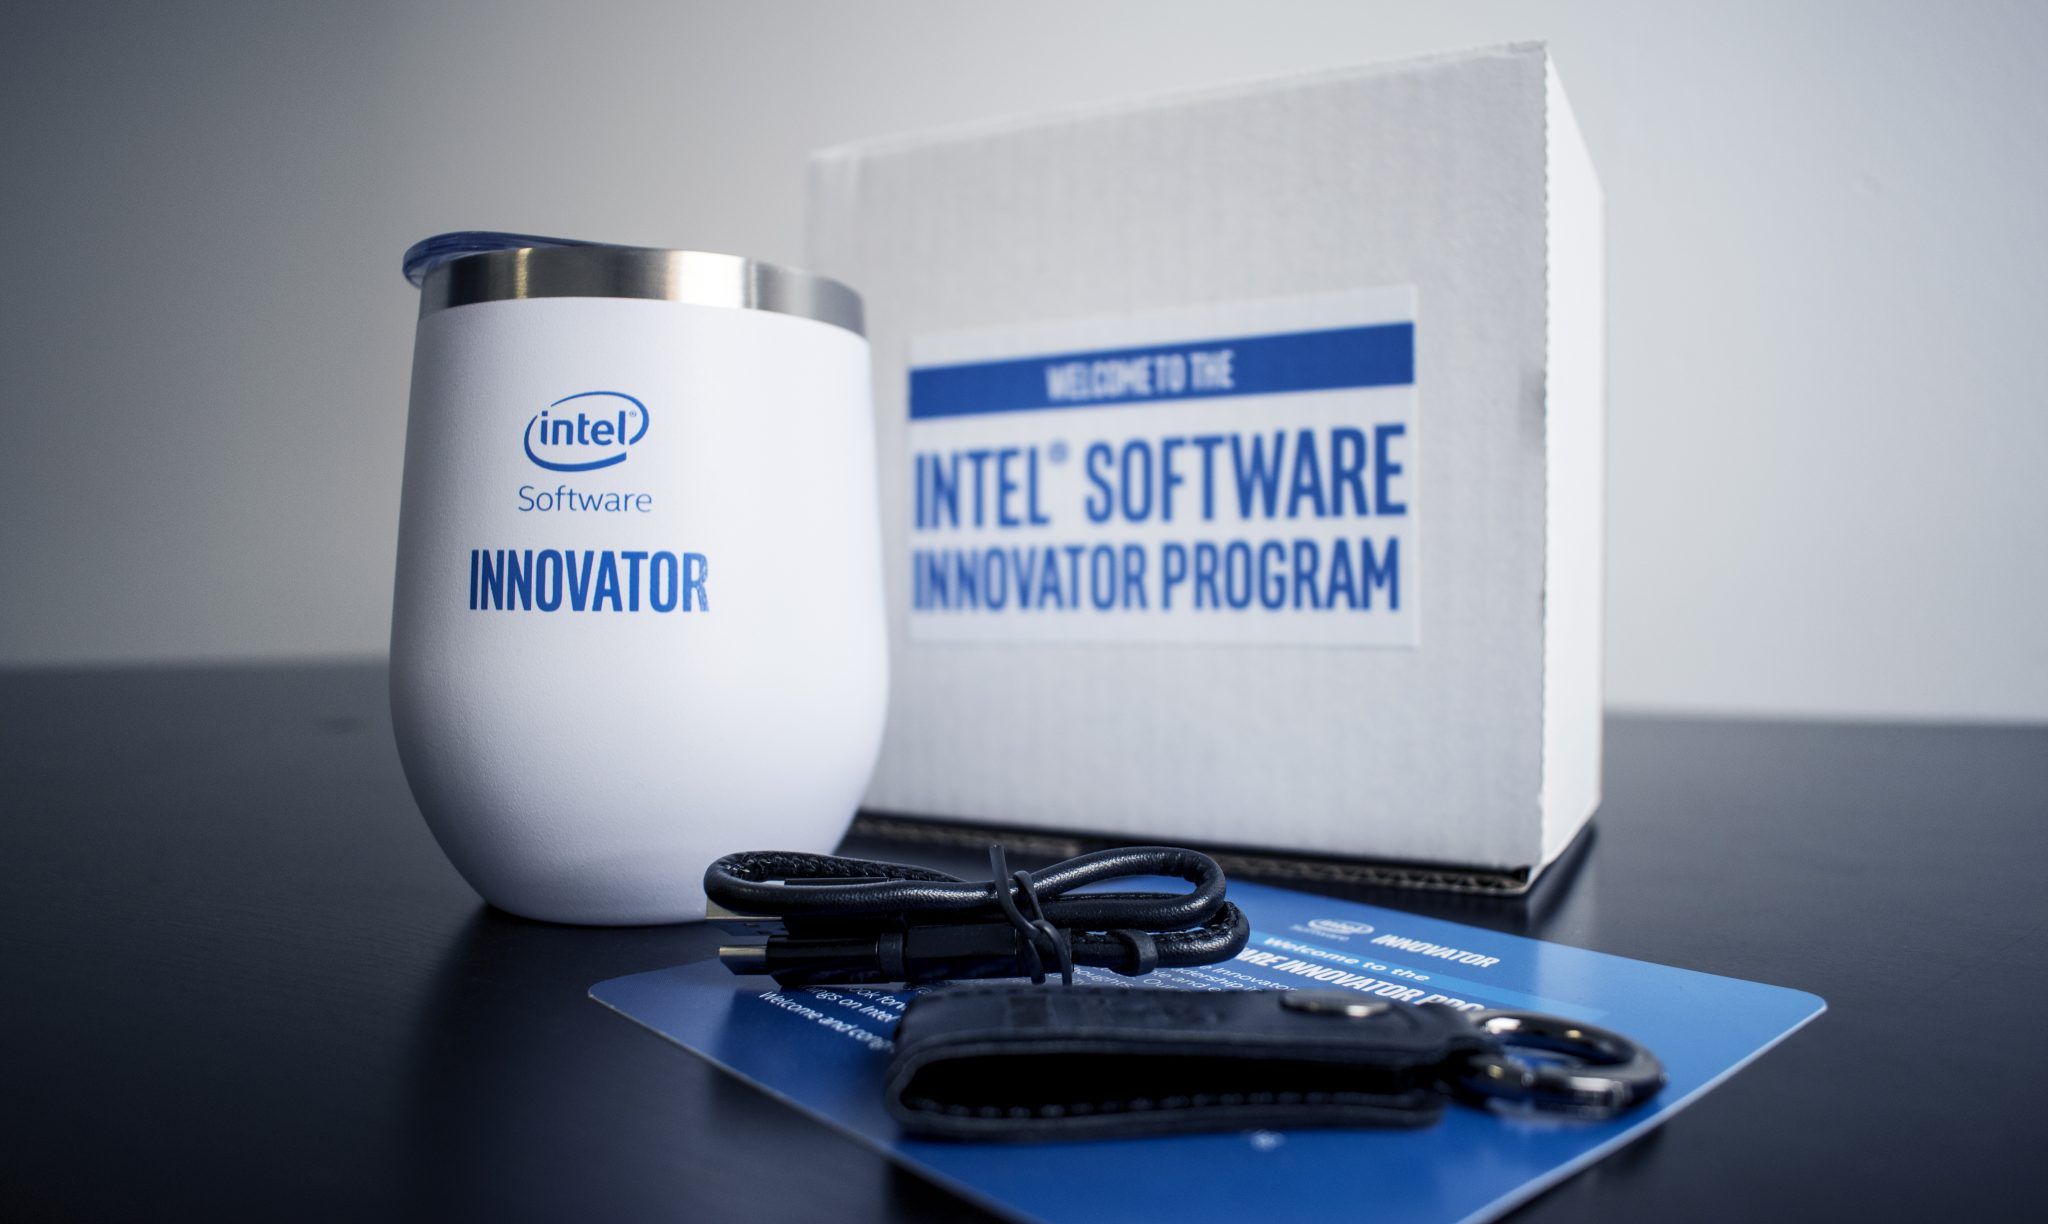 Tarrnie Williams & Ben Sheftel Recognised as Intel Innovators